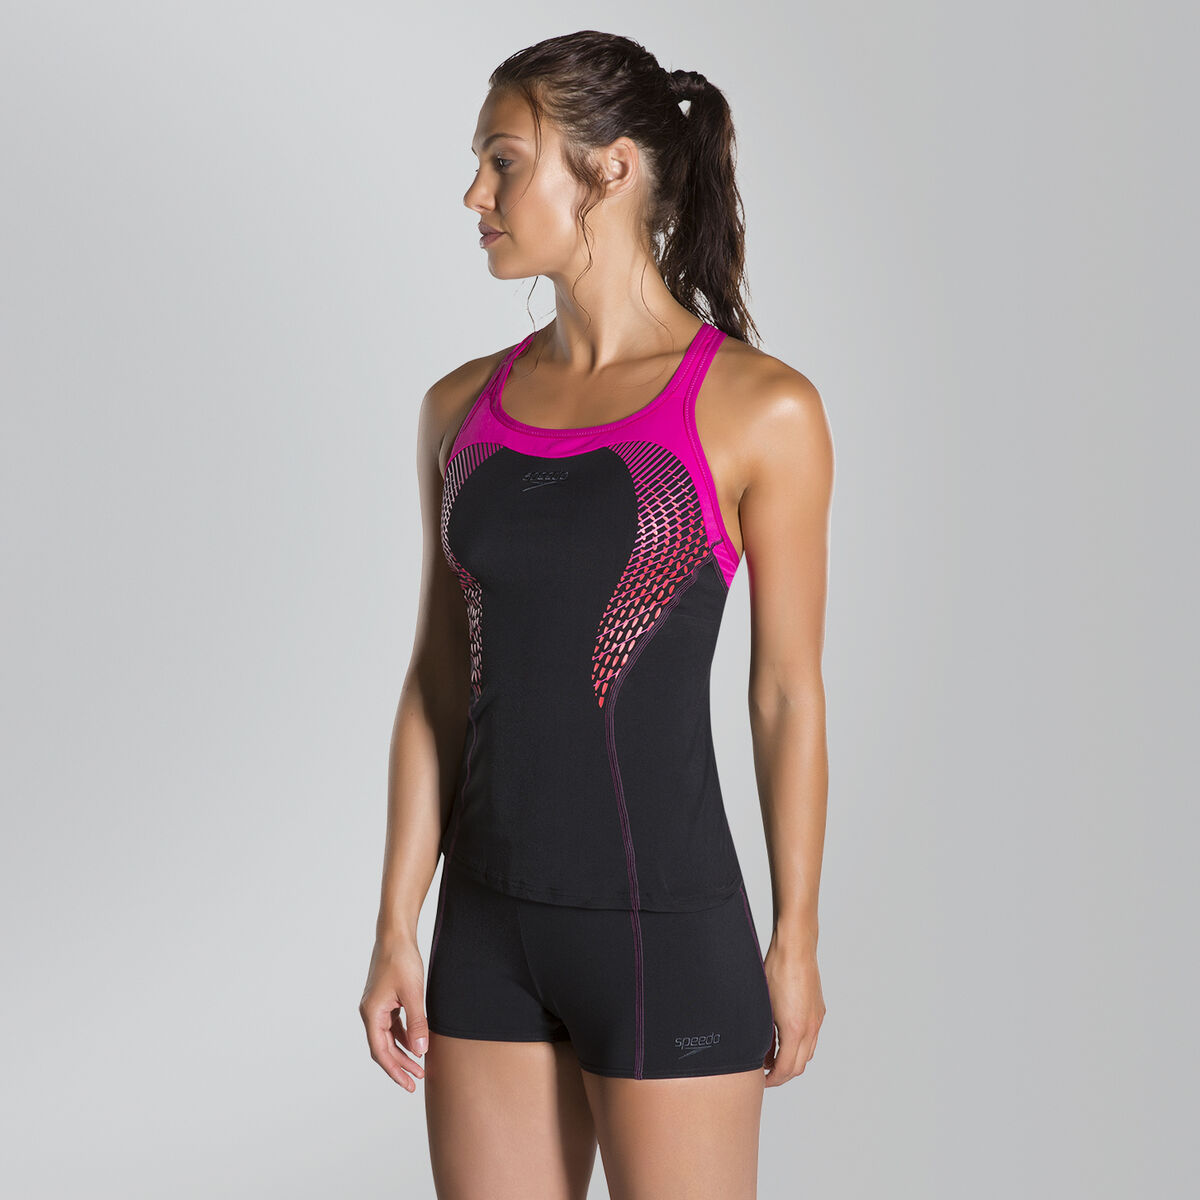 Speedo Fit Tankini Kickback Swimsuit